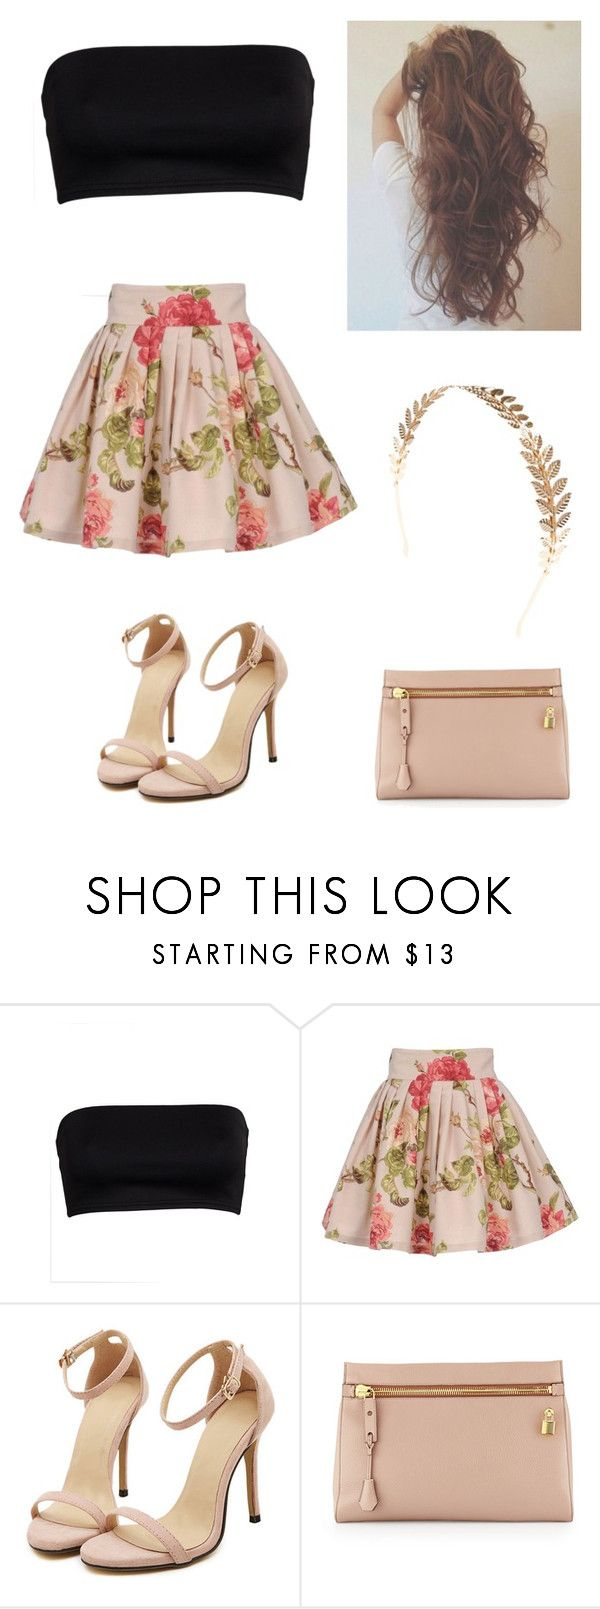 """""""Untitled #140"""" by jessicagaxiola on Polyvore featuring Marta Ferri, Tom Ford and Wet Seal"""